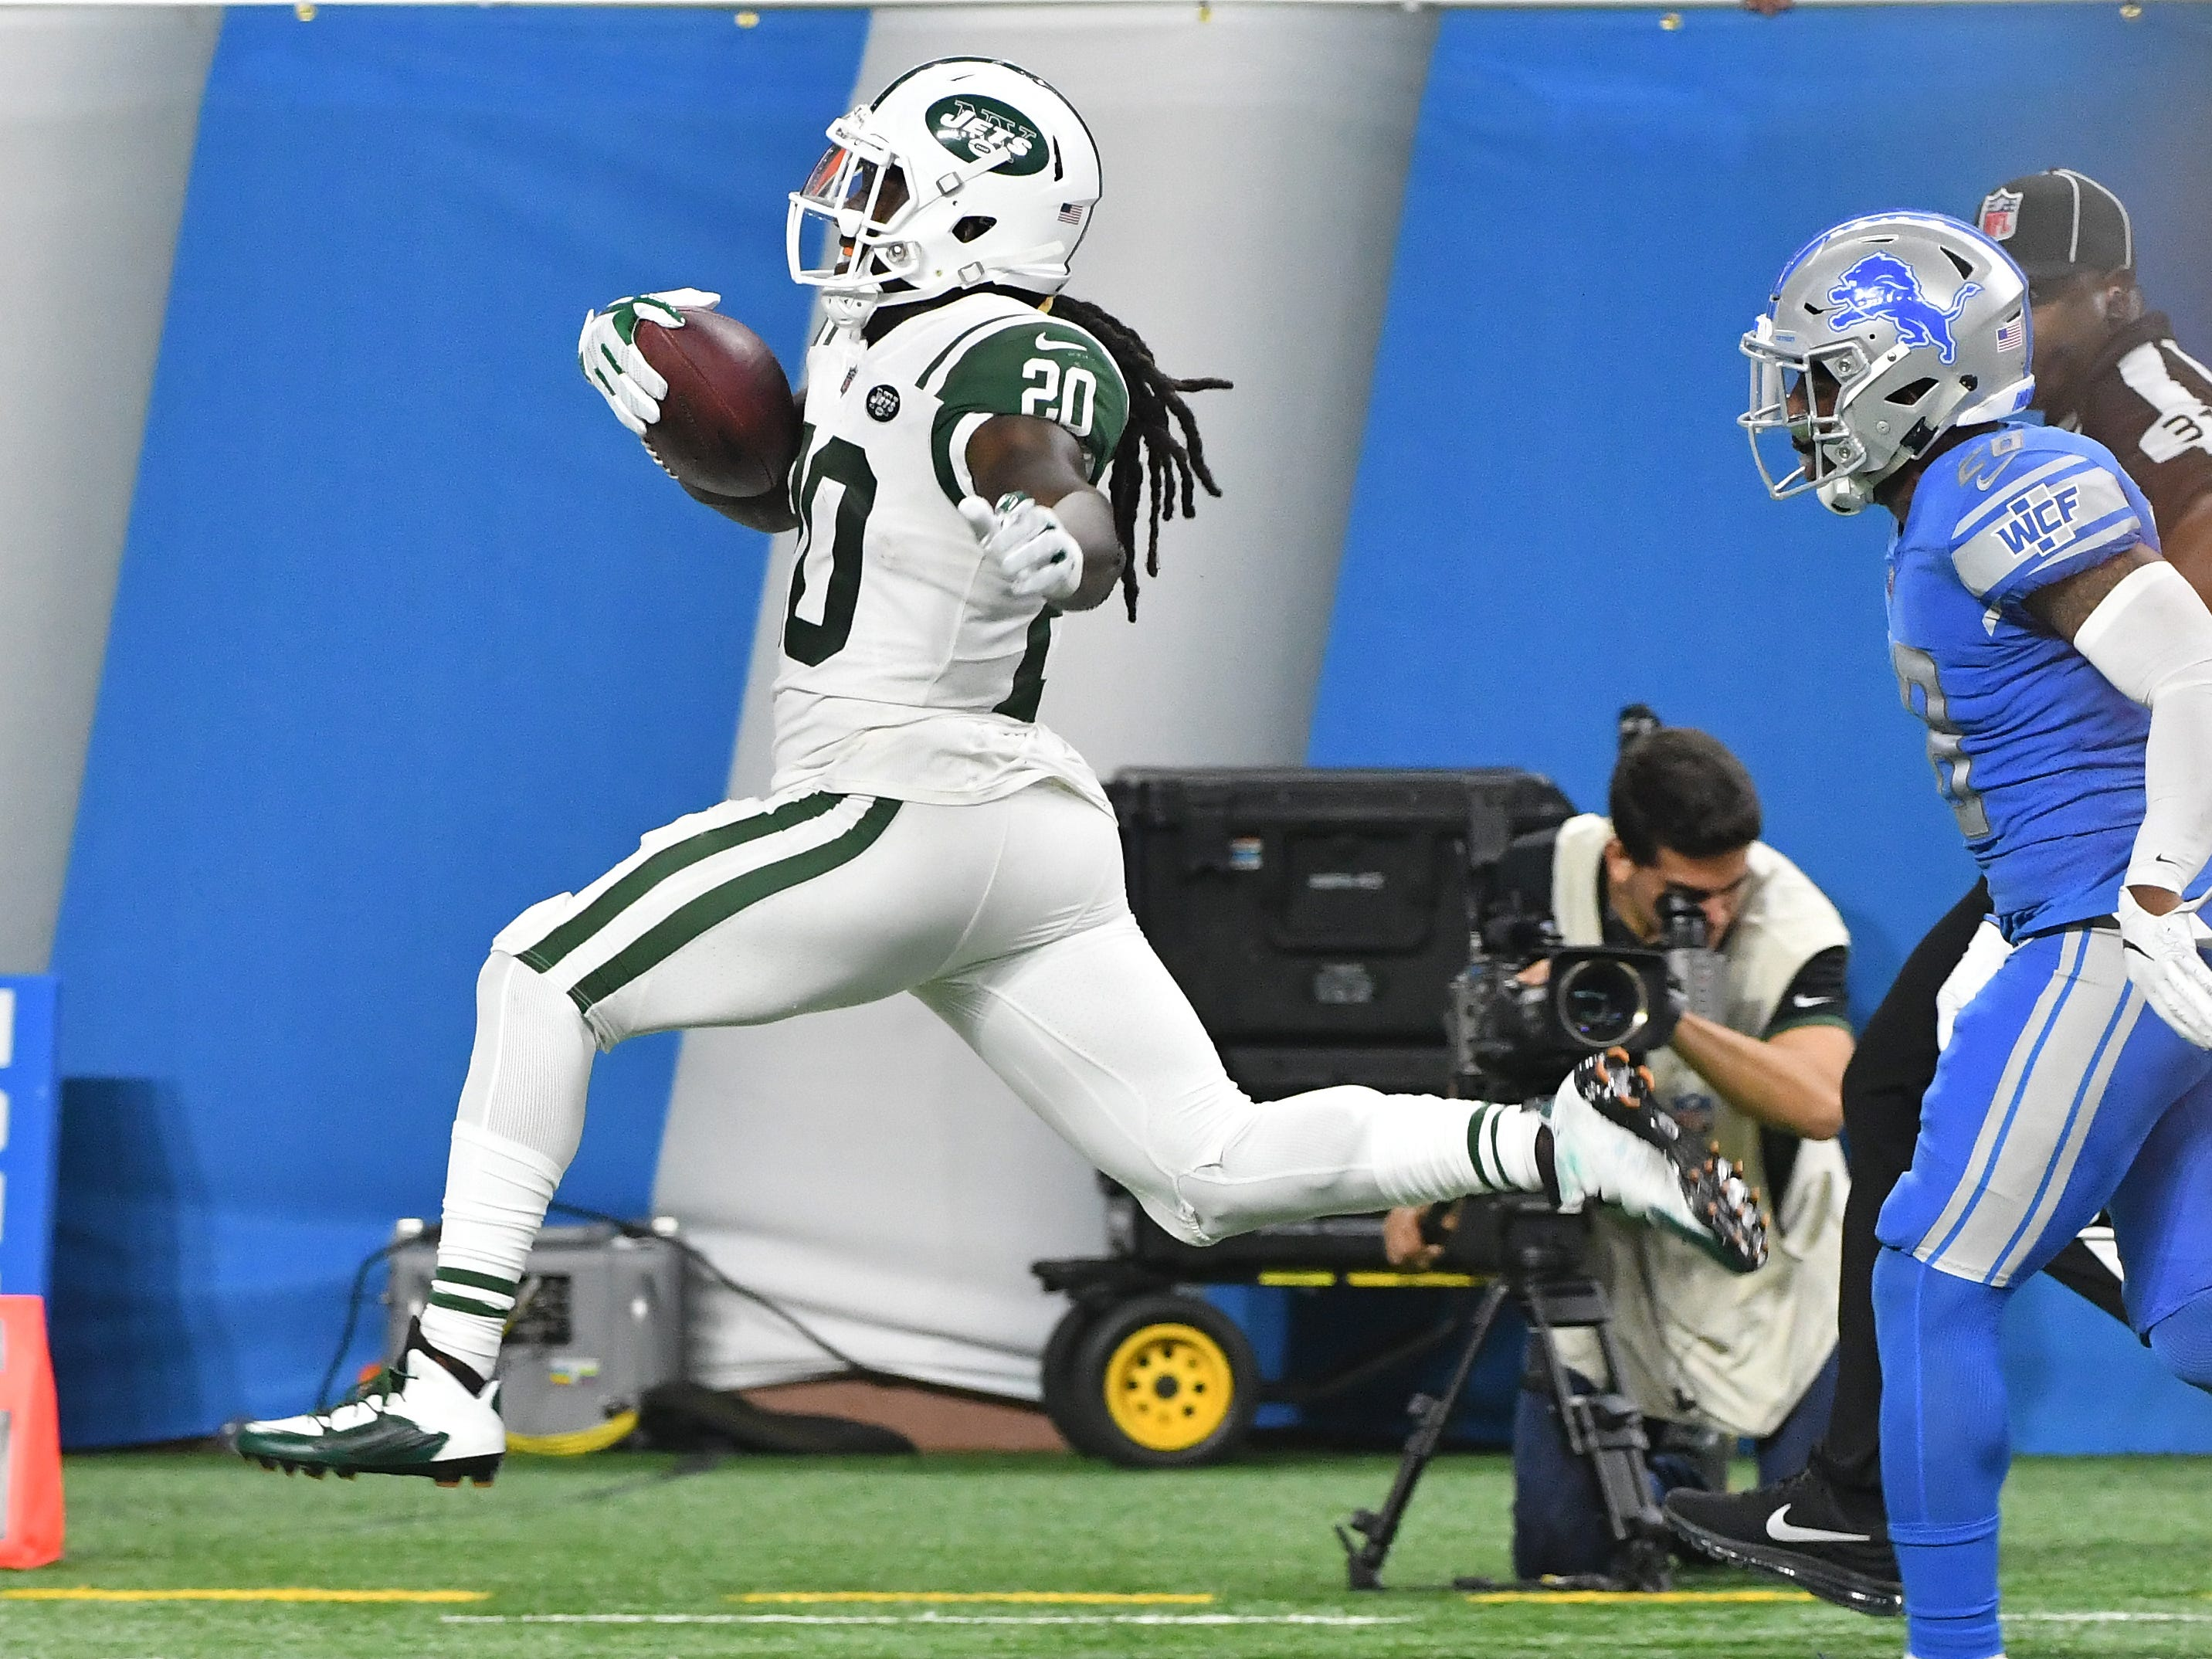 Jets' Isaiah Crowell runs a kick back for a touchdown with Lions' Quandre Diggs in pursuit in the third quarter.